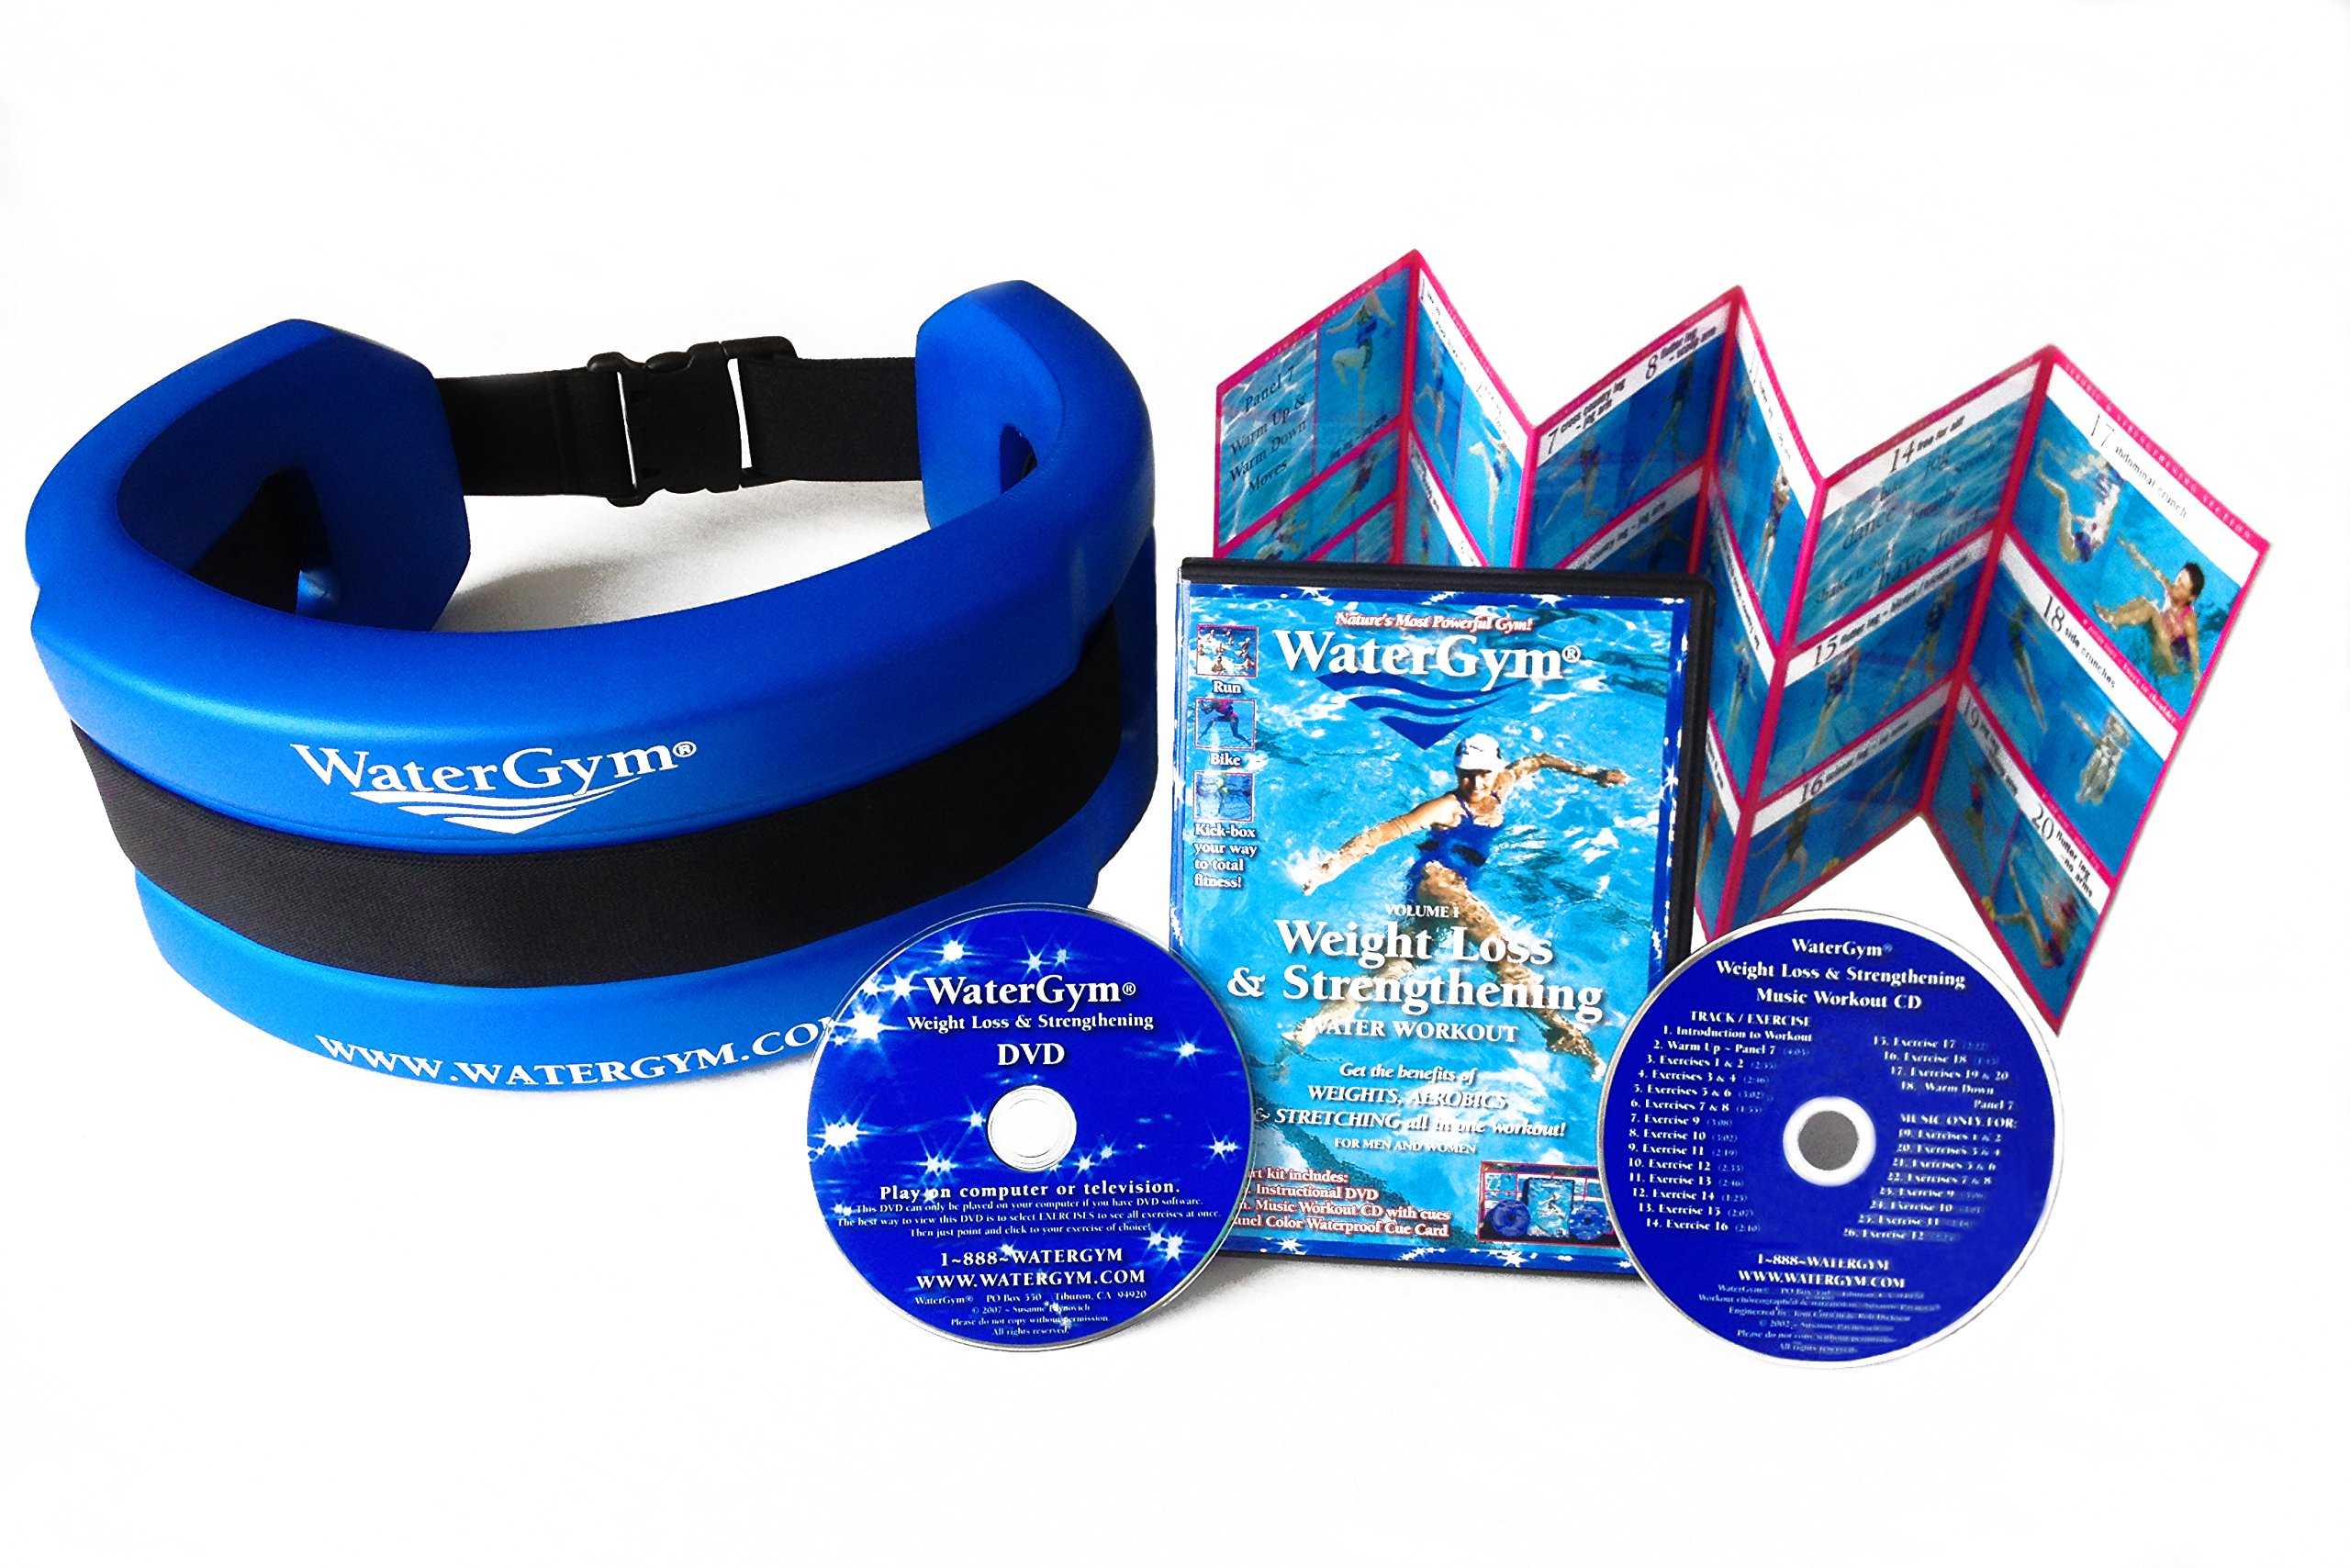 WaterGym Water Aerobics Float Belt for Aqua Jogging and Deep Water Exercise & Weight Loss DVD/Music CD/Cue Card- Size MED/LARGE-Blue